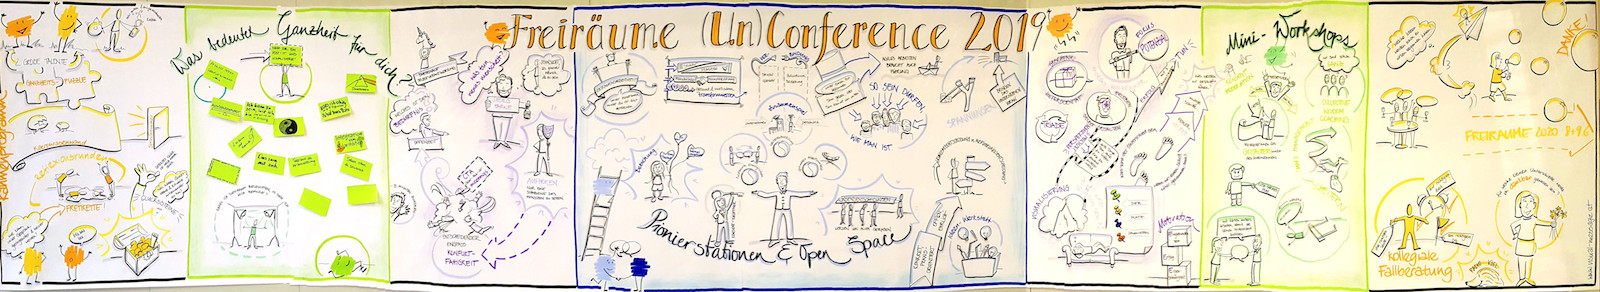 Freiräume Unconference 2019 - Graphic Recording